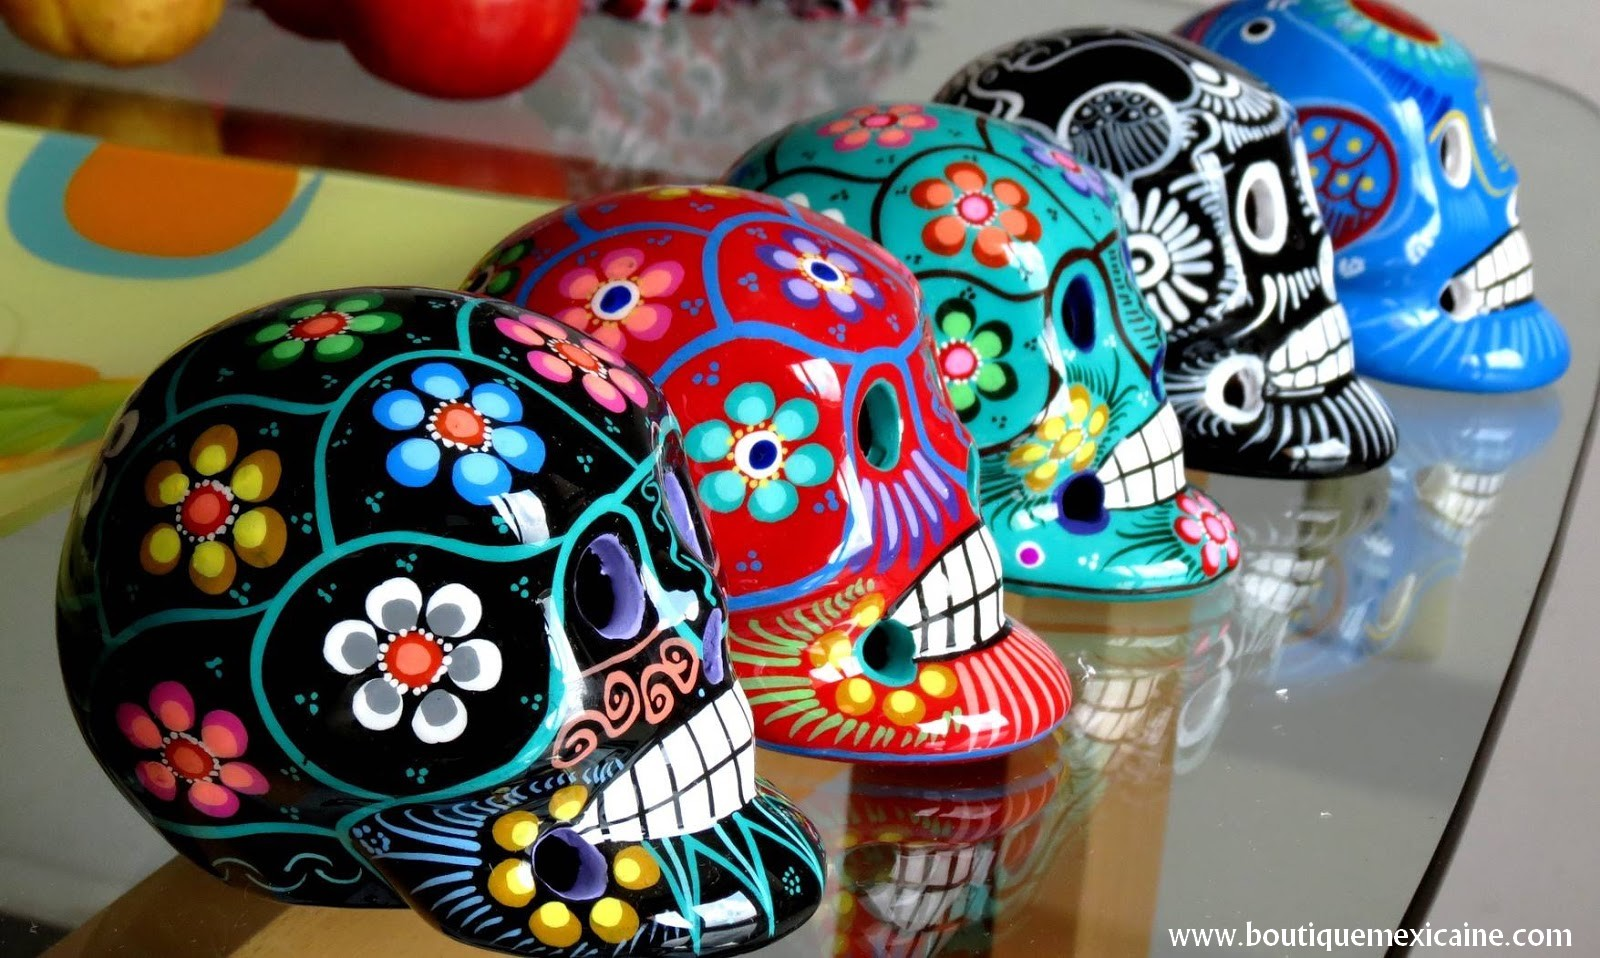 mexique artisanat calavera mexicaine tete de mort. Black Bedroom Furniture Sets. Home Design Ideas